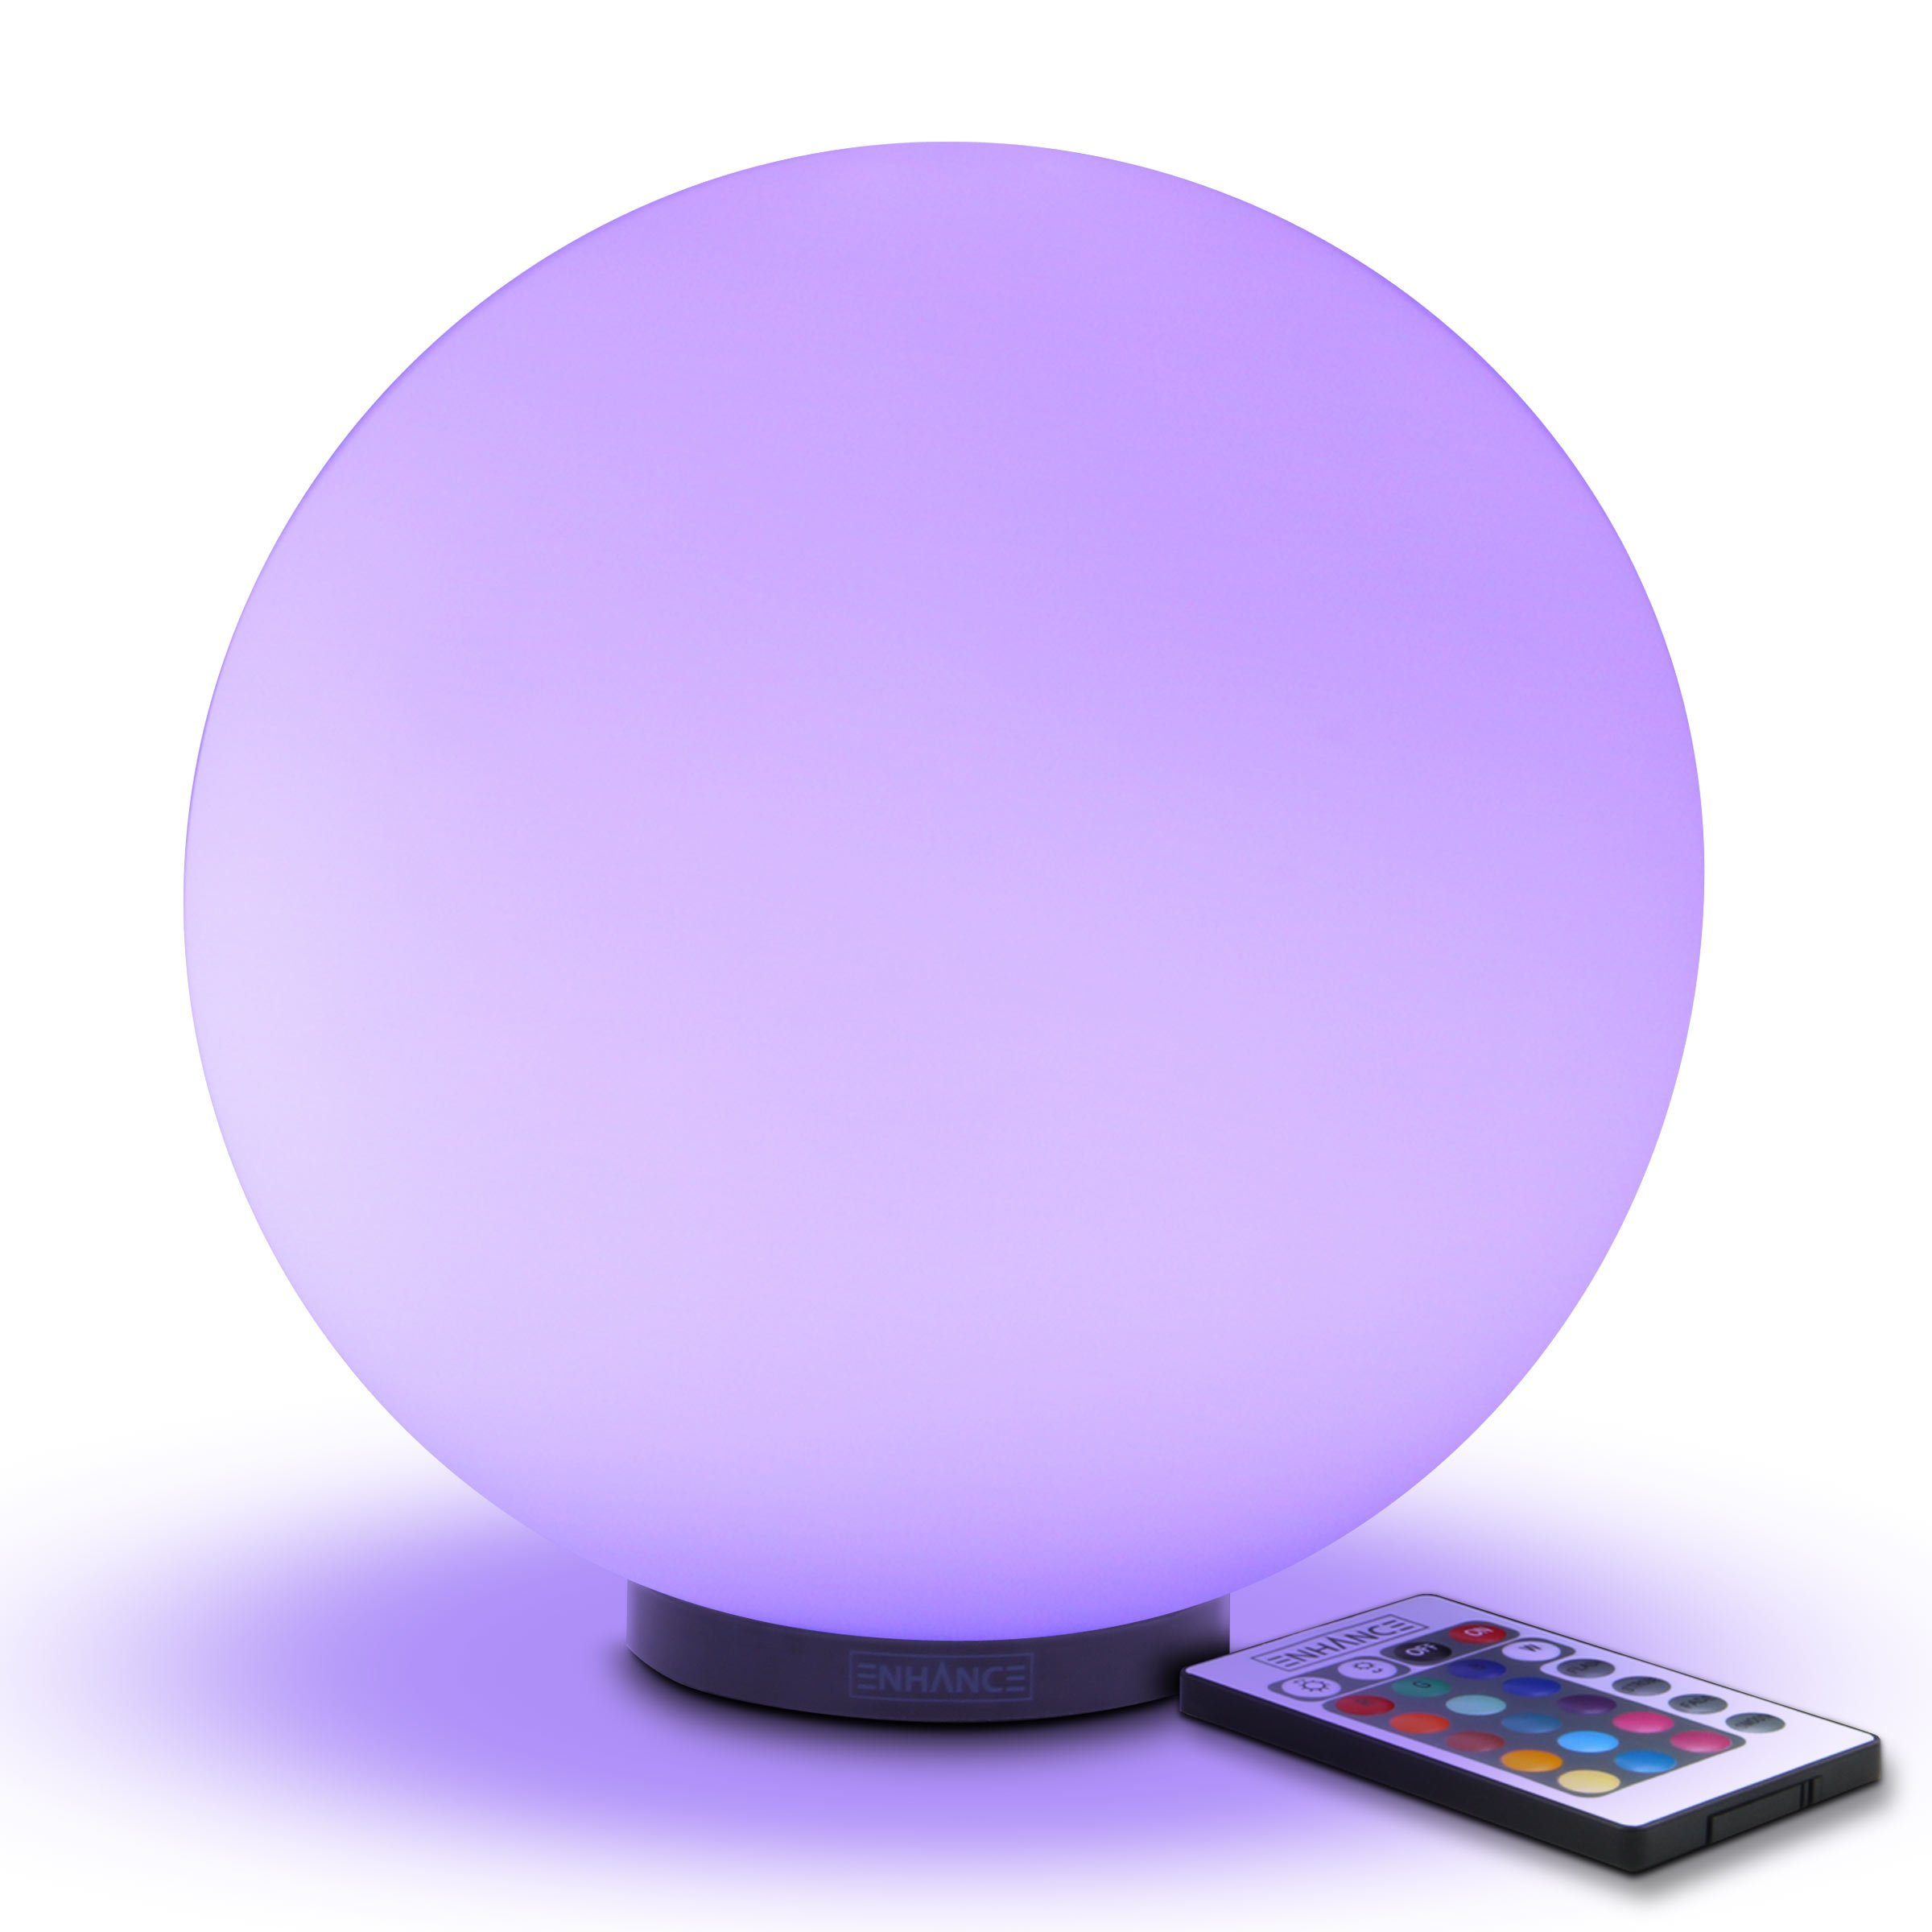 ENHANCE LED Globe Night Light Ambient Color Changing Premium Glass Mood Lamp with Remote Control - 7.9 inch 4 Lighting Modes & Battery or AC Adapter Power - Perfect for Children & Adults